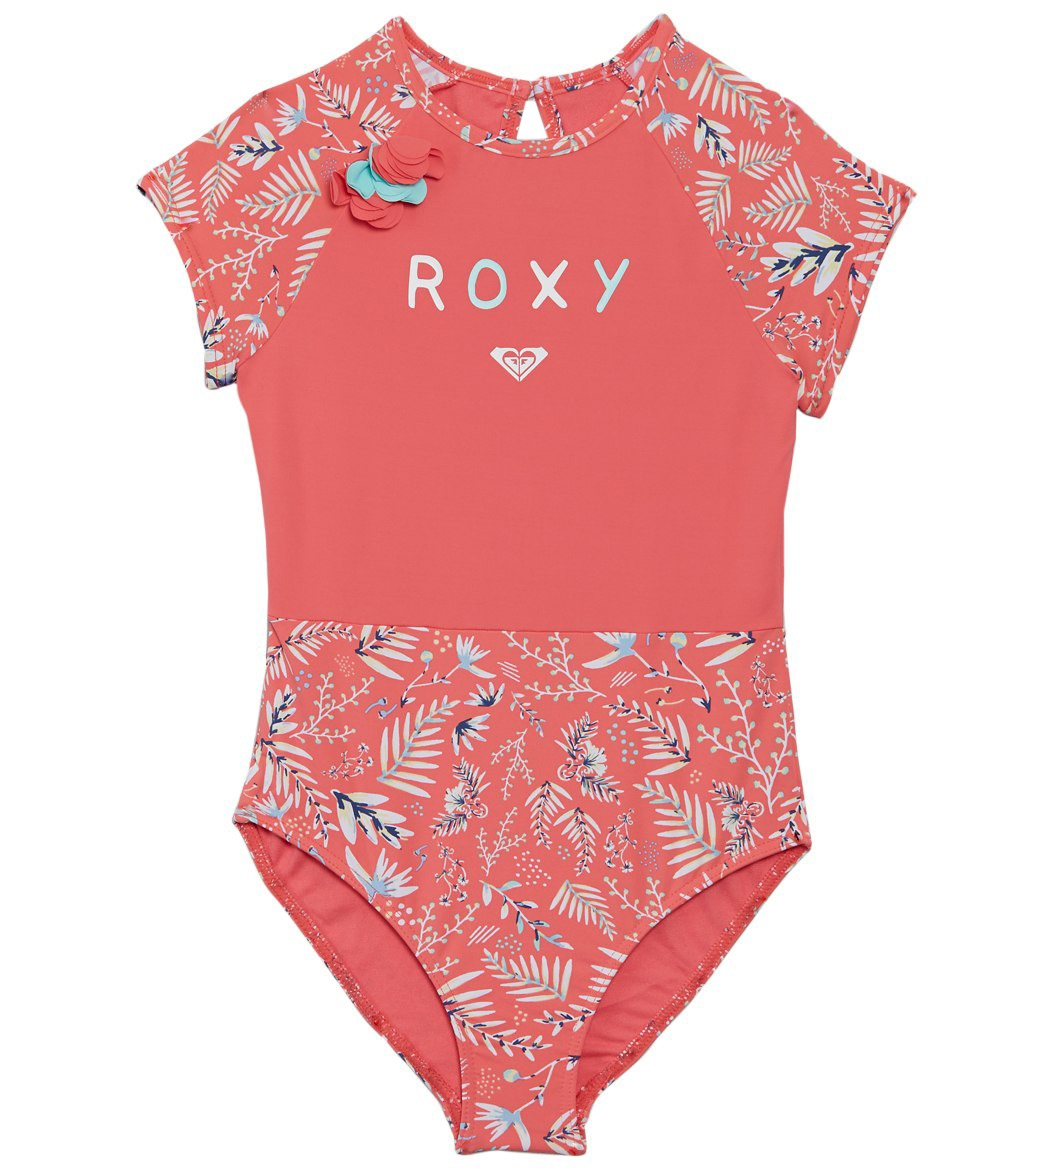 1d8efd2a29a Roxy Girls' Bali Dance Cap Sleeves One Piece Rashguard Swimsuit (Toddler,  Little Kid) at SwimOutlet.com - Free Shipping